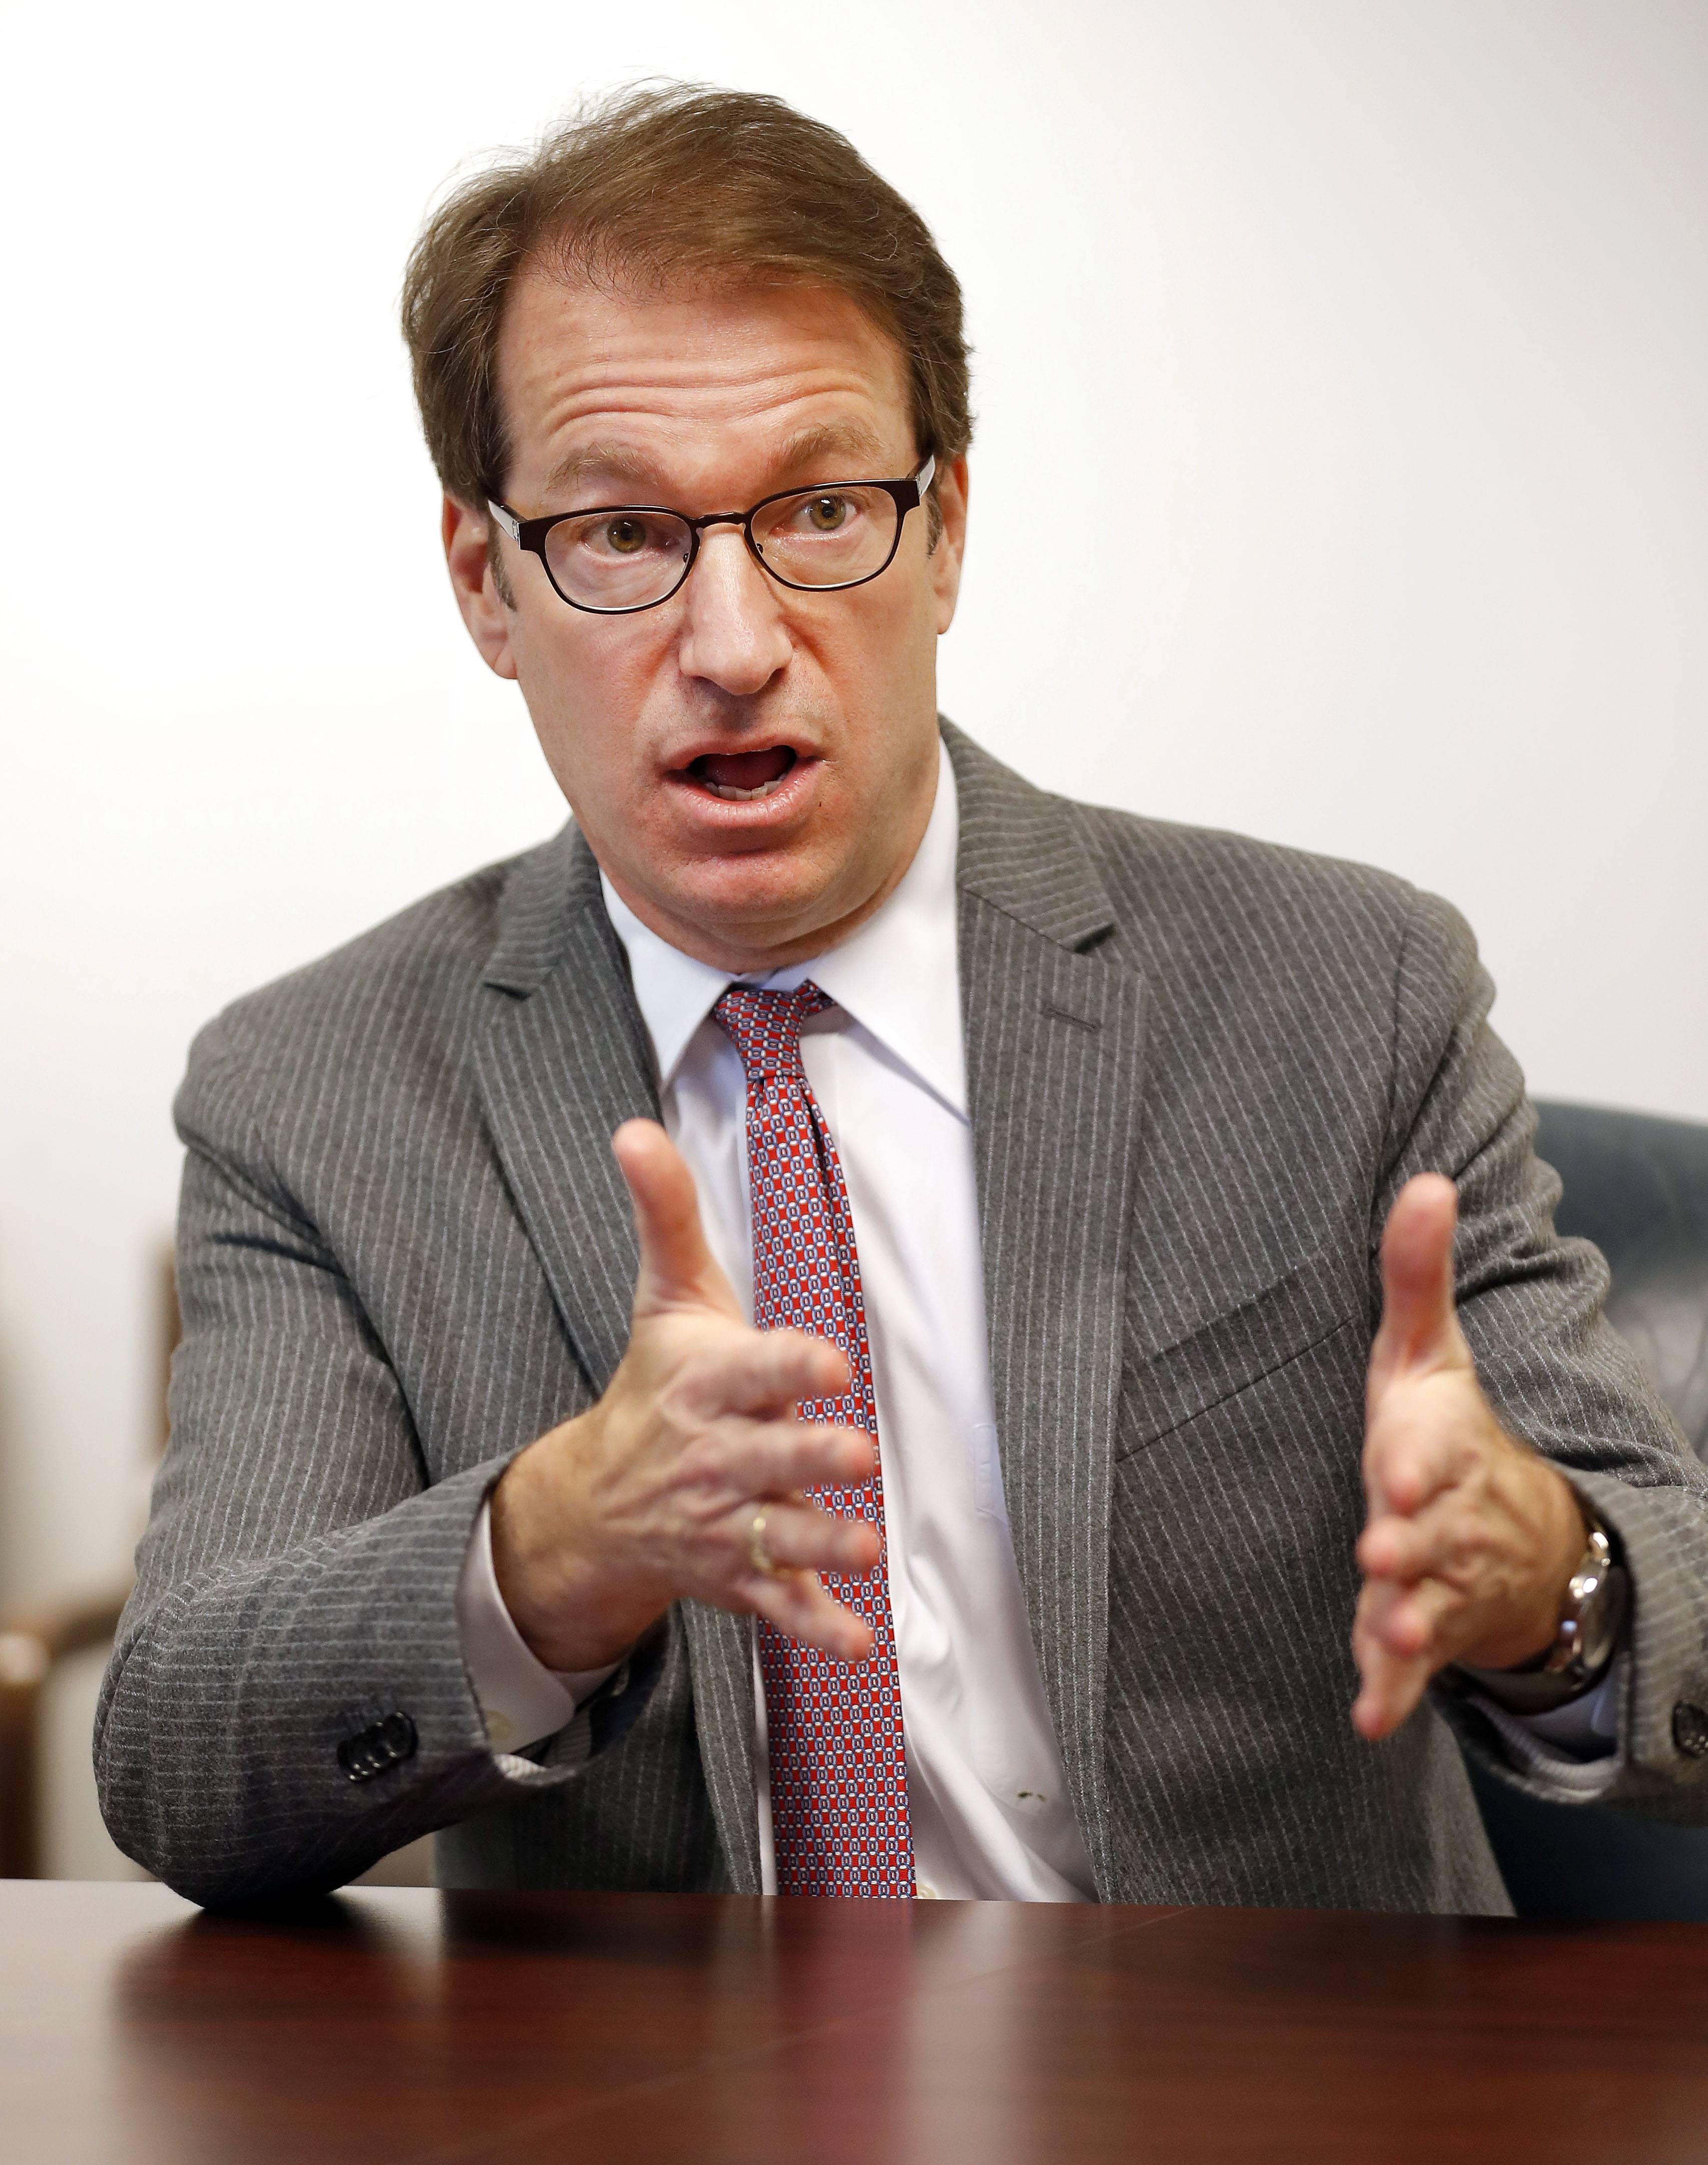 U.S. Rep. Peter Roskam of Wheaton is offering to debate Democratic challenger Sean Casten of Downers Grove four times before the November election.